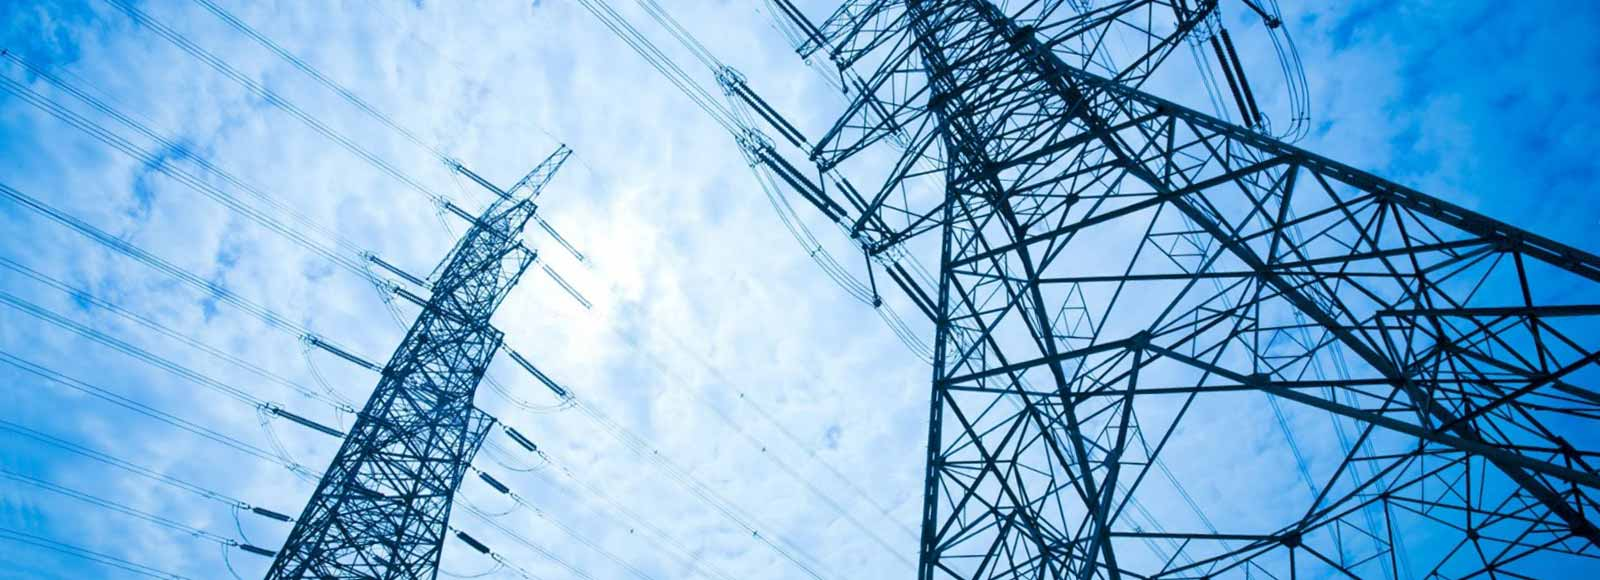 Transmission towers manufacturing software